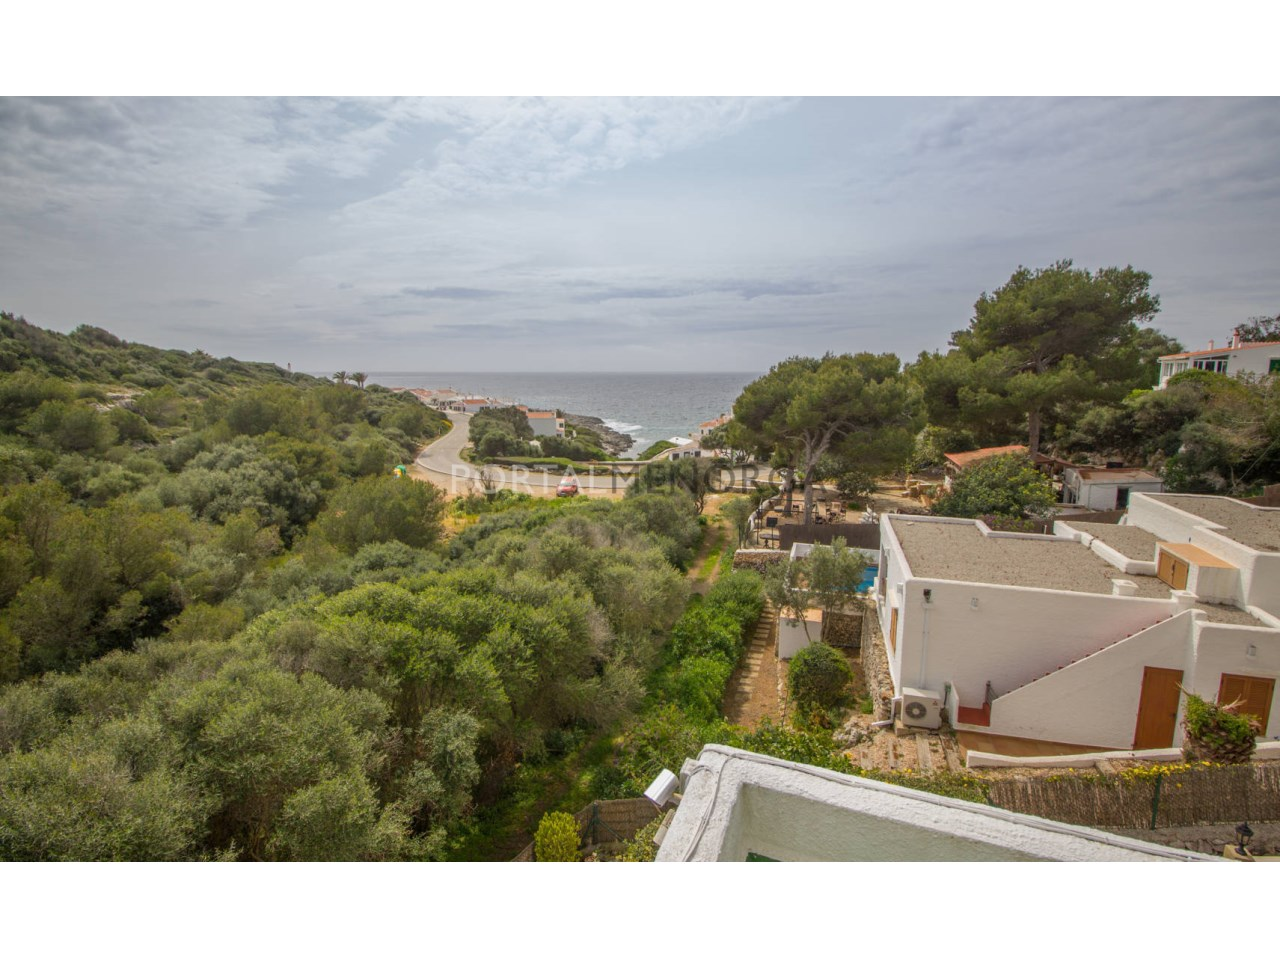 Villa for sale in Binibeca with sea view